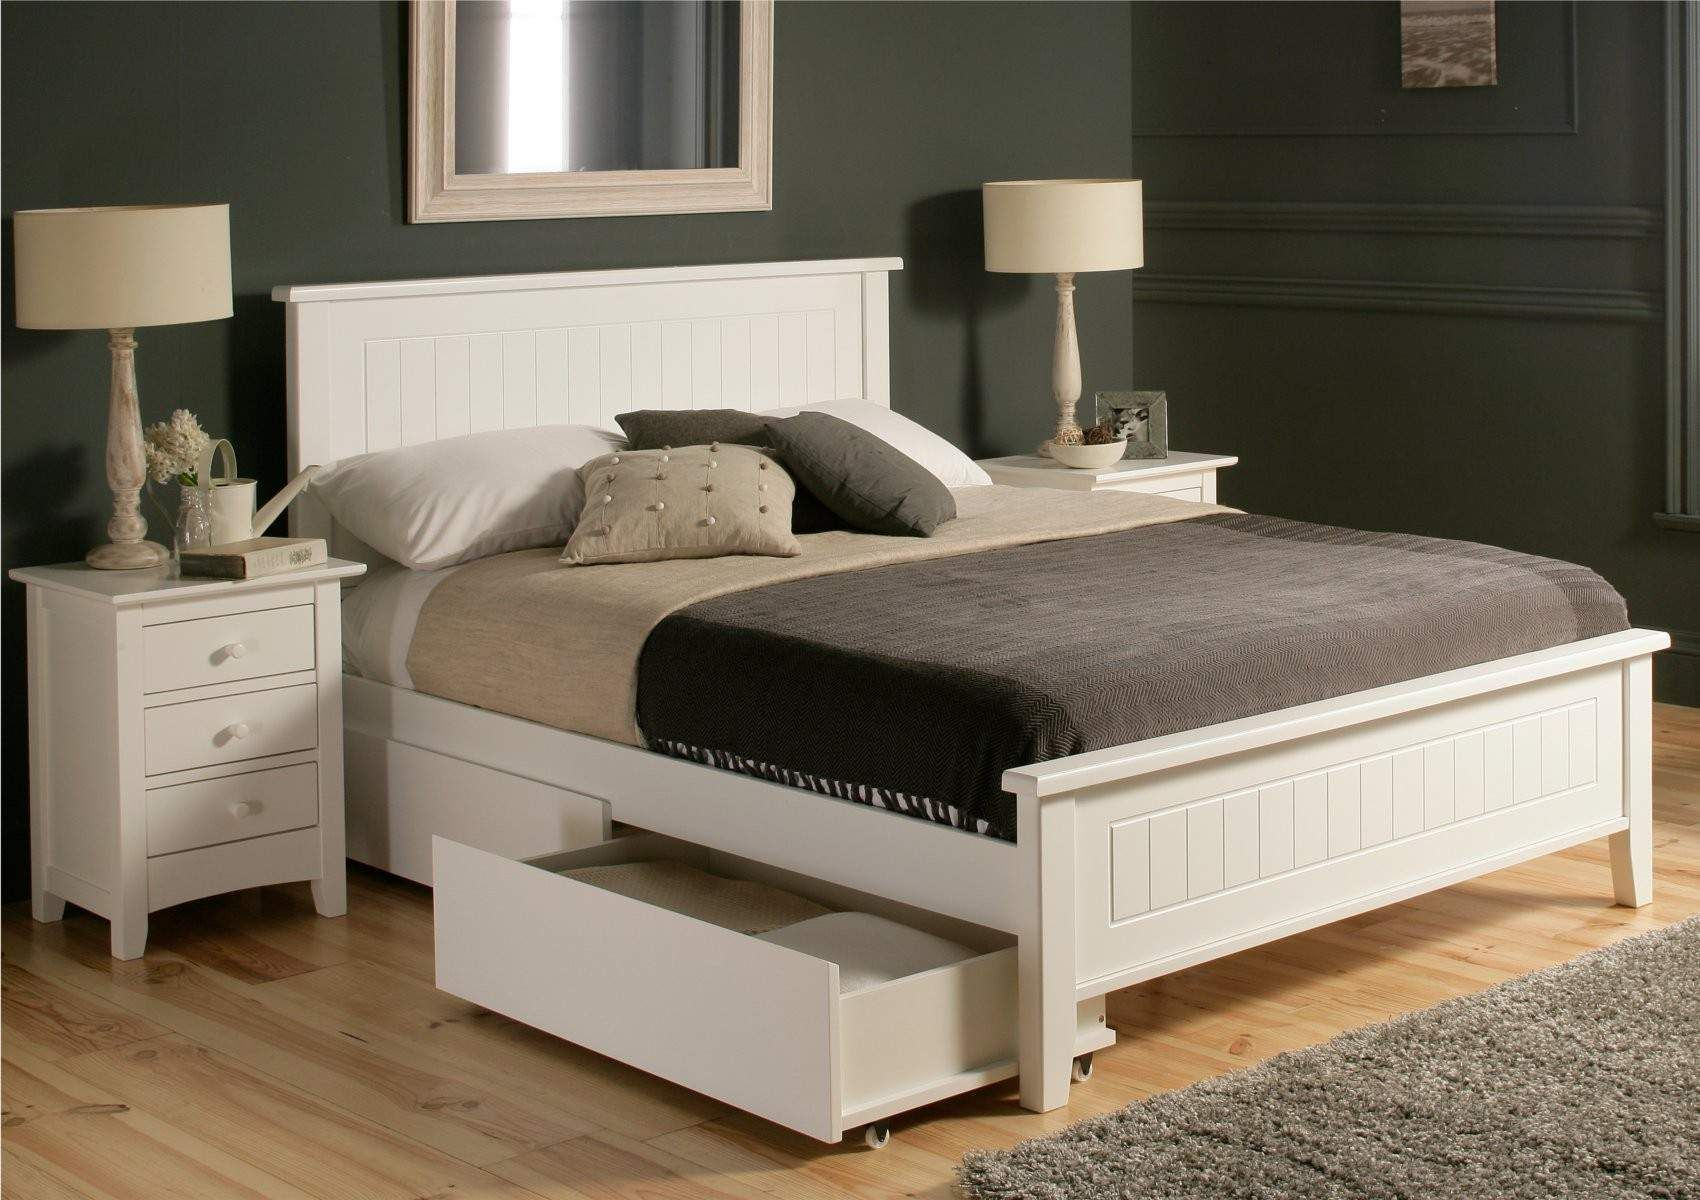 Wooden King Size Bed Frame With Drawers In 2020 White Bed Frame White Wooden Bed Bed With Drawers Underneath